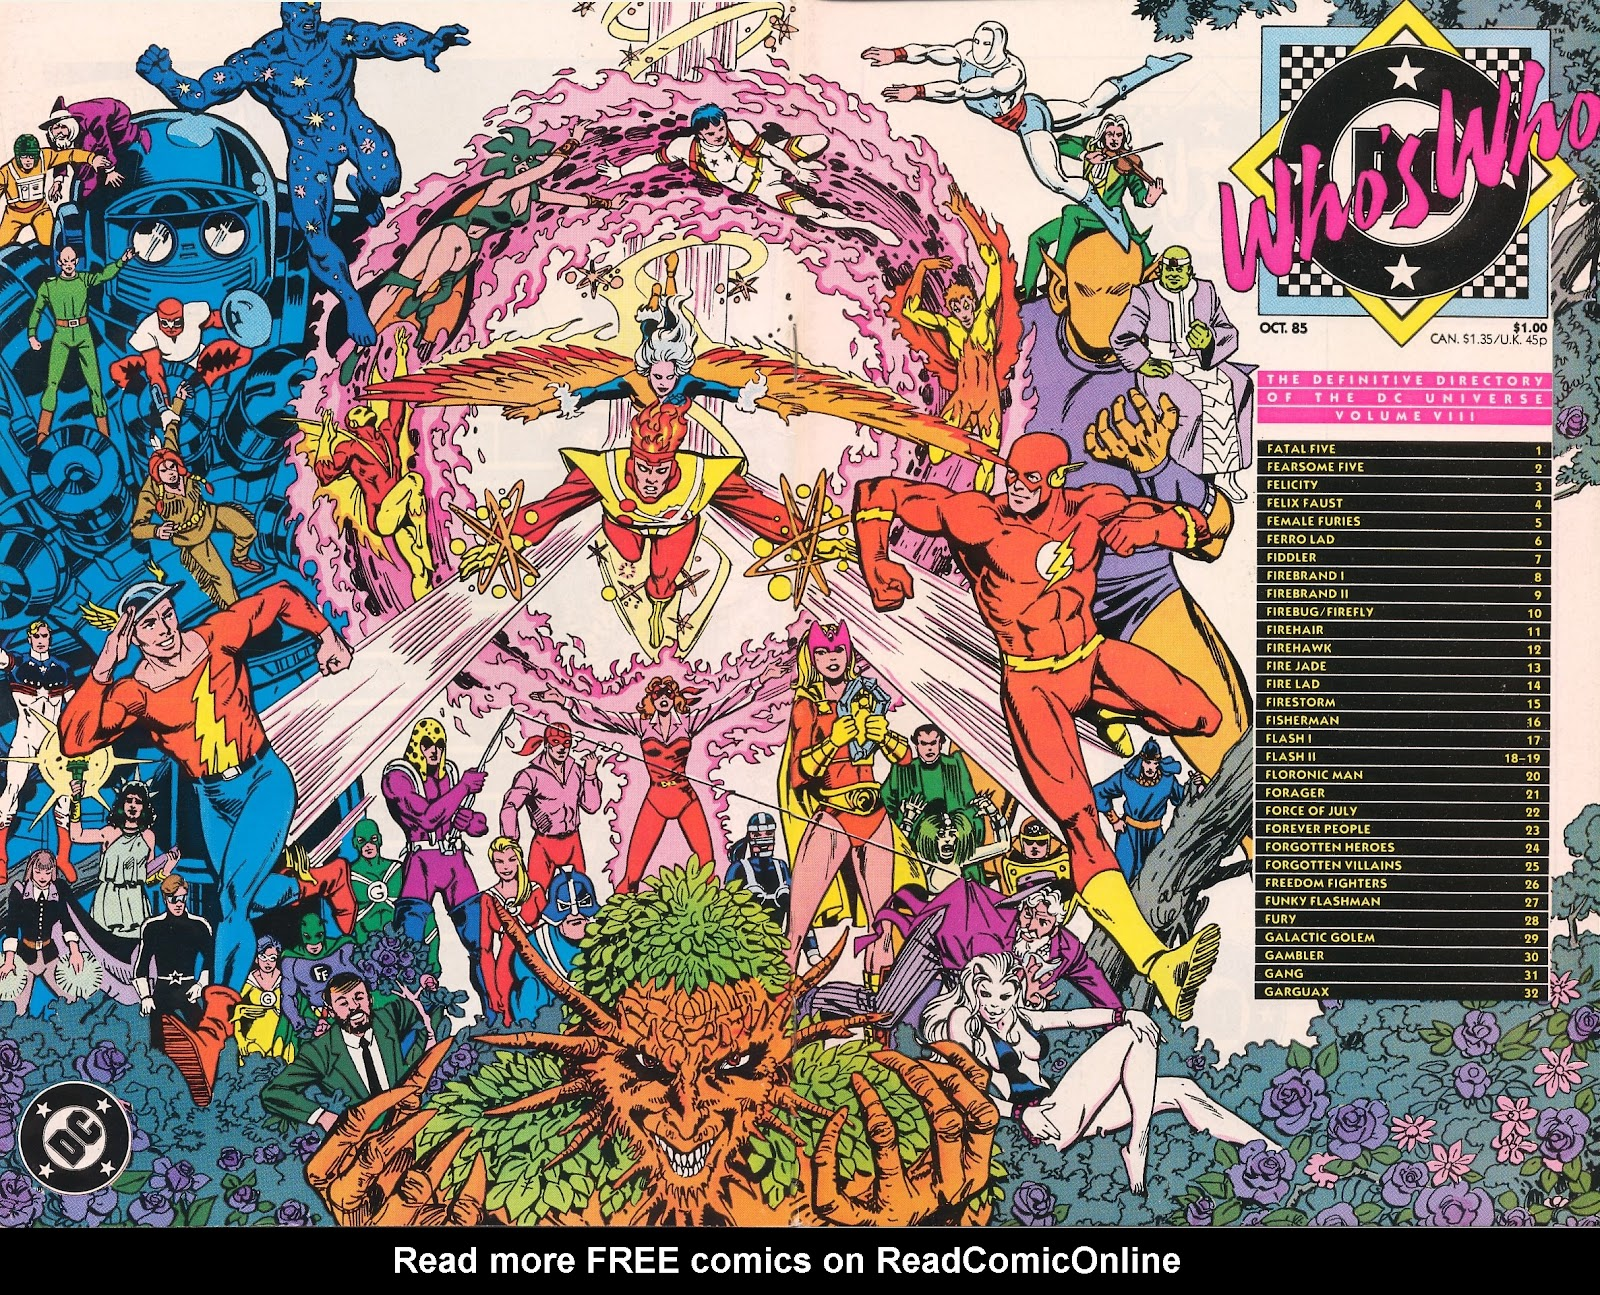 Whos Who: The Definitive Directory of the DC Universe 8 Page 1